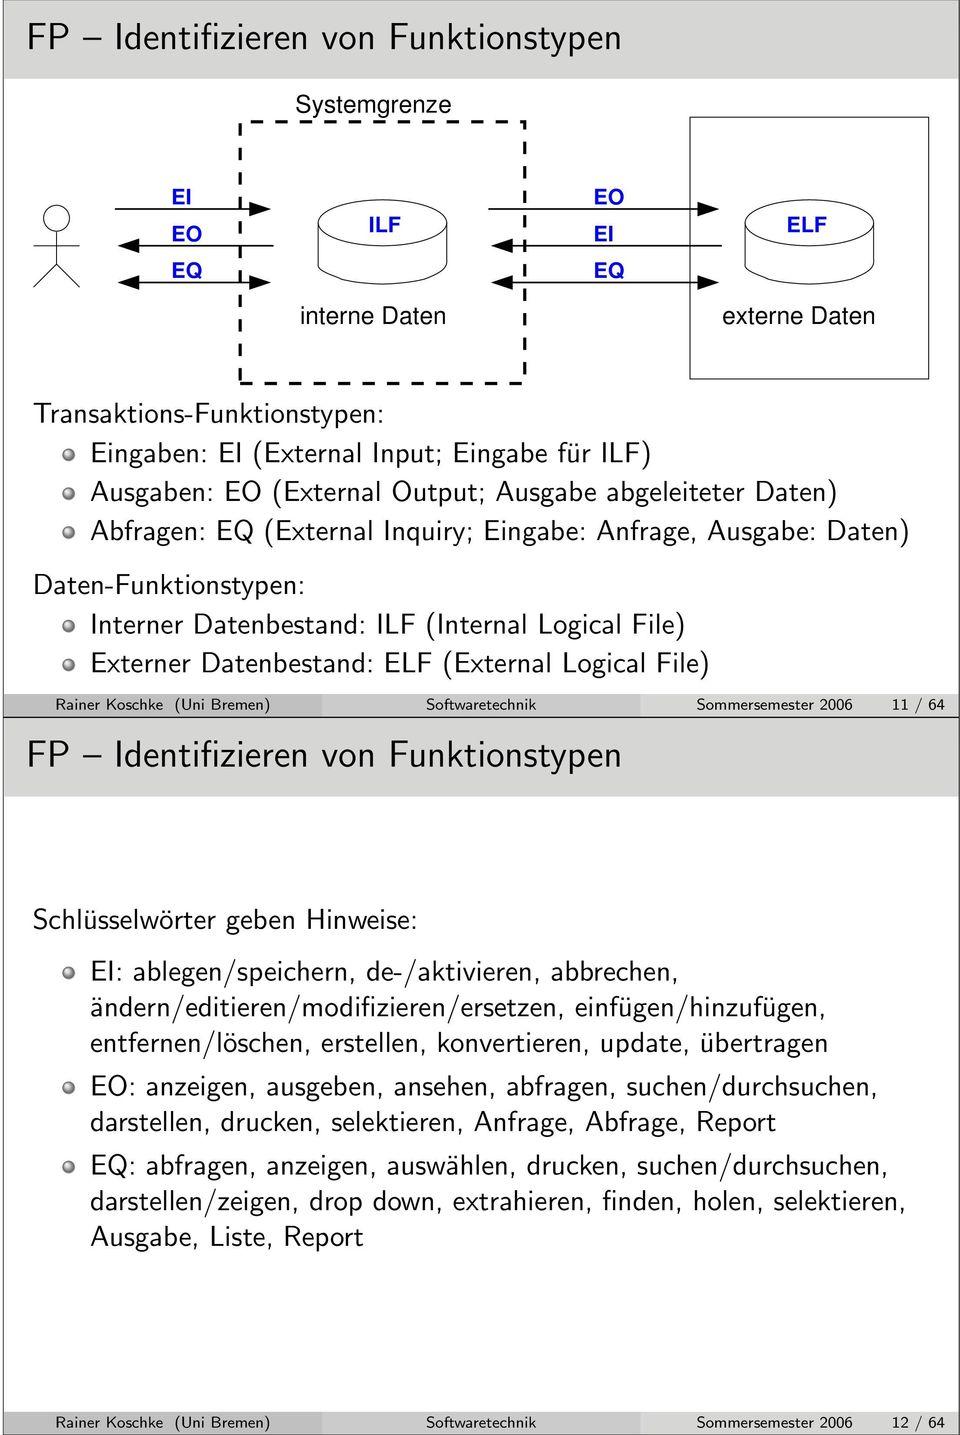 Datenbestand: ILF (Internal Logical File) Externer Datenbestand: ELF (External Logical File) Rainer Koschke (Uni Bremen) Softwaretechnik Sommersemester 2006 11 / 64 Kosten- und Aufwandsschätzung: